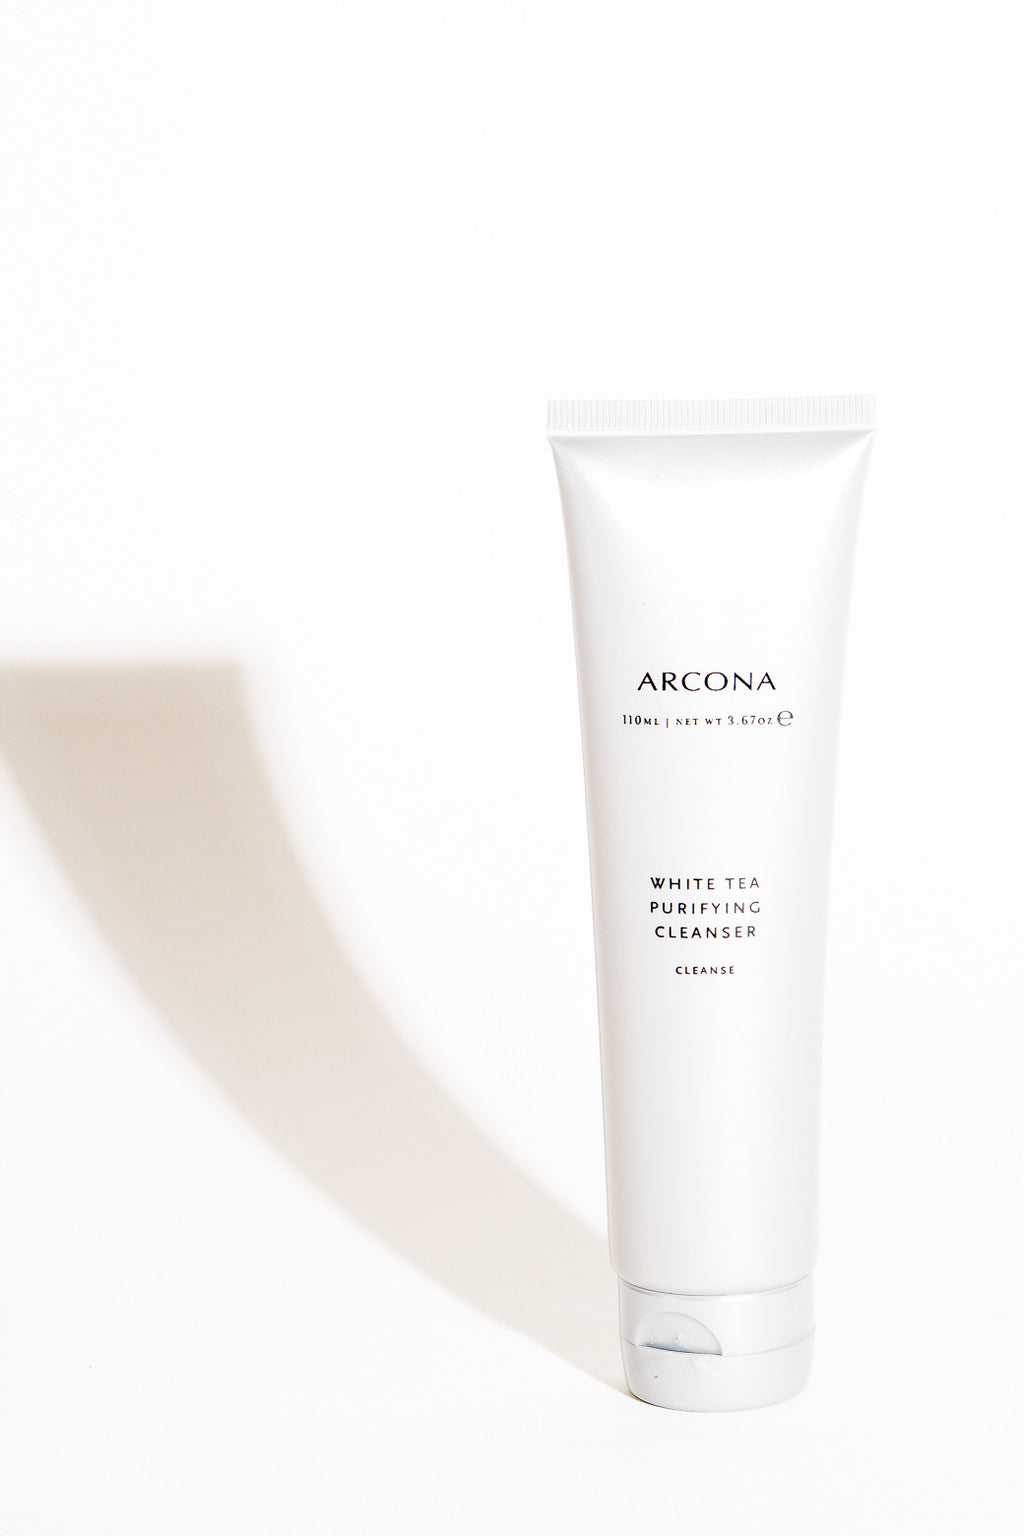 Arcona White Tea Purifying Cleanser